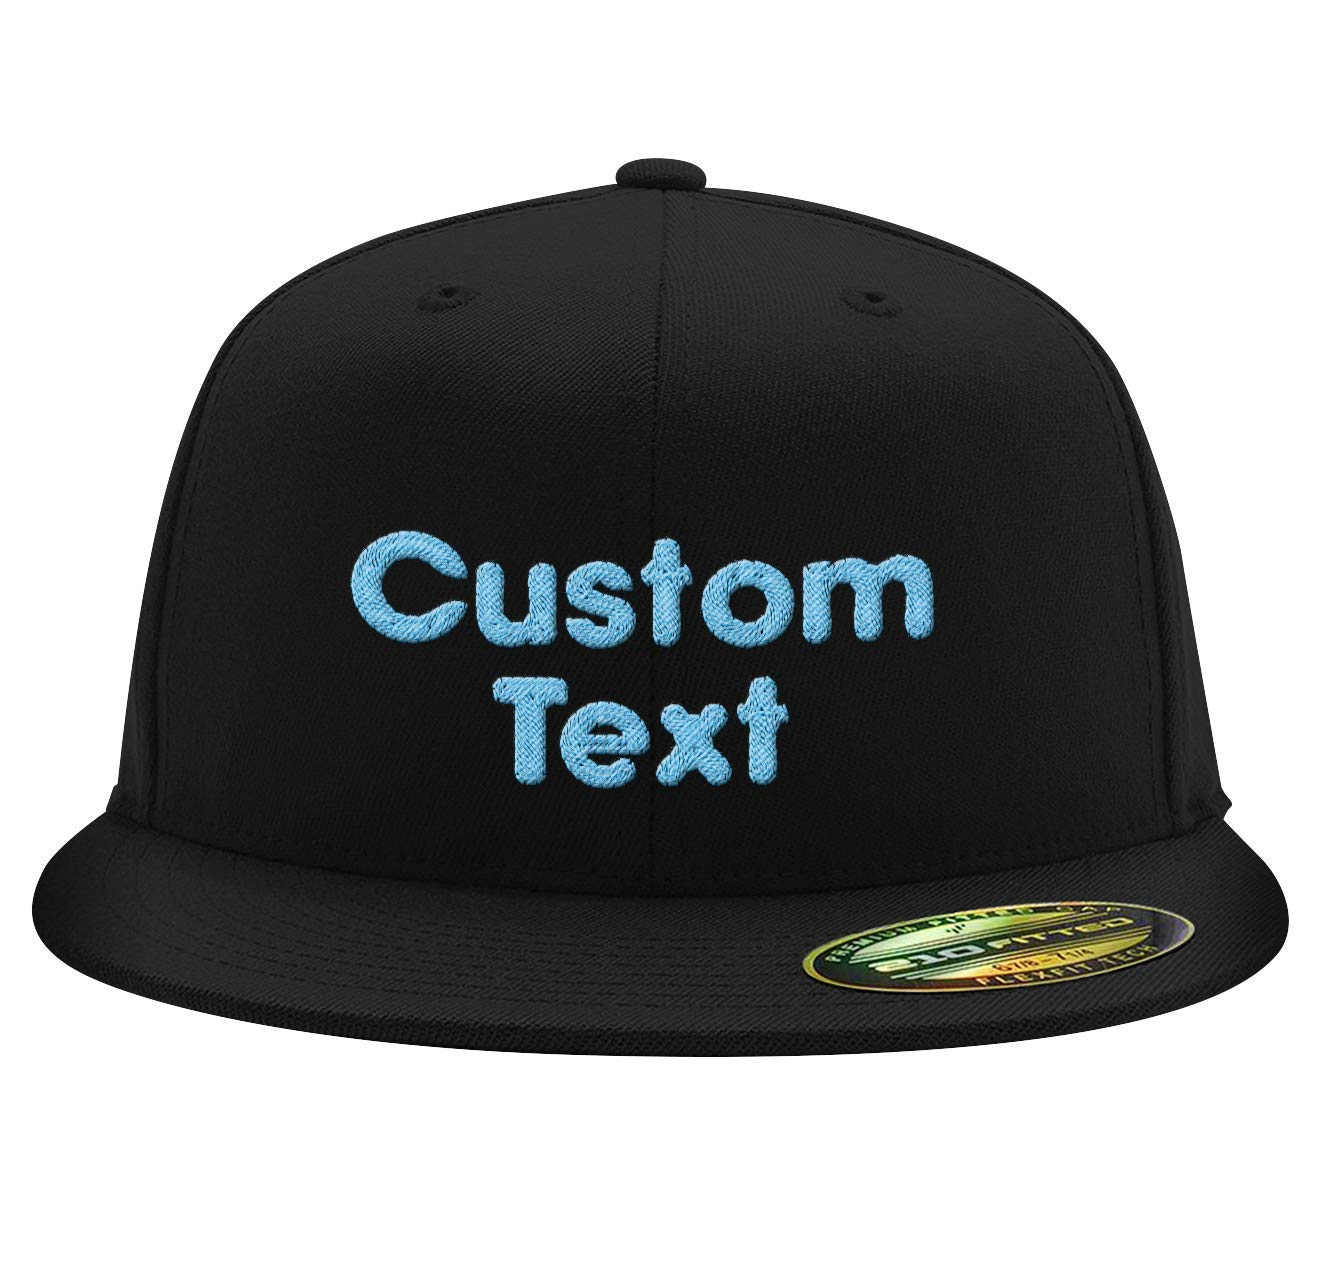 Your Design Here Custom Embroidered Flexfit 110F Structured Flat Bill Snapback Personalized Image /& Text